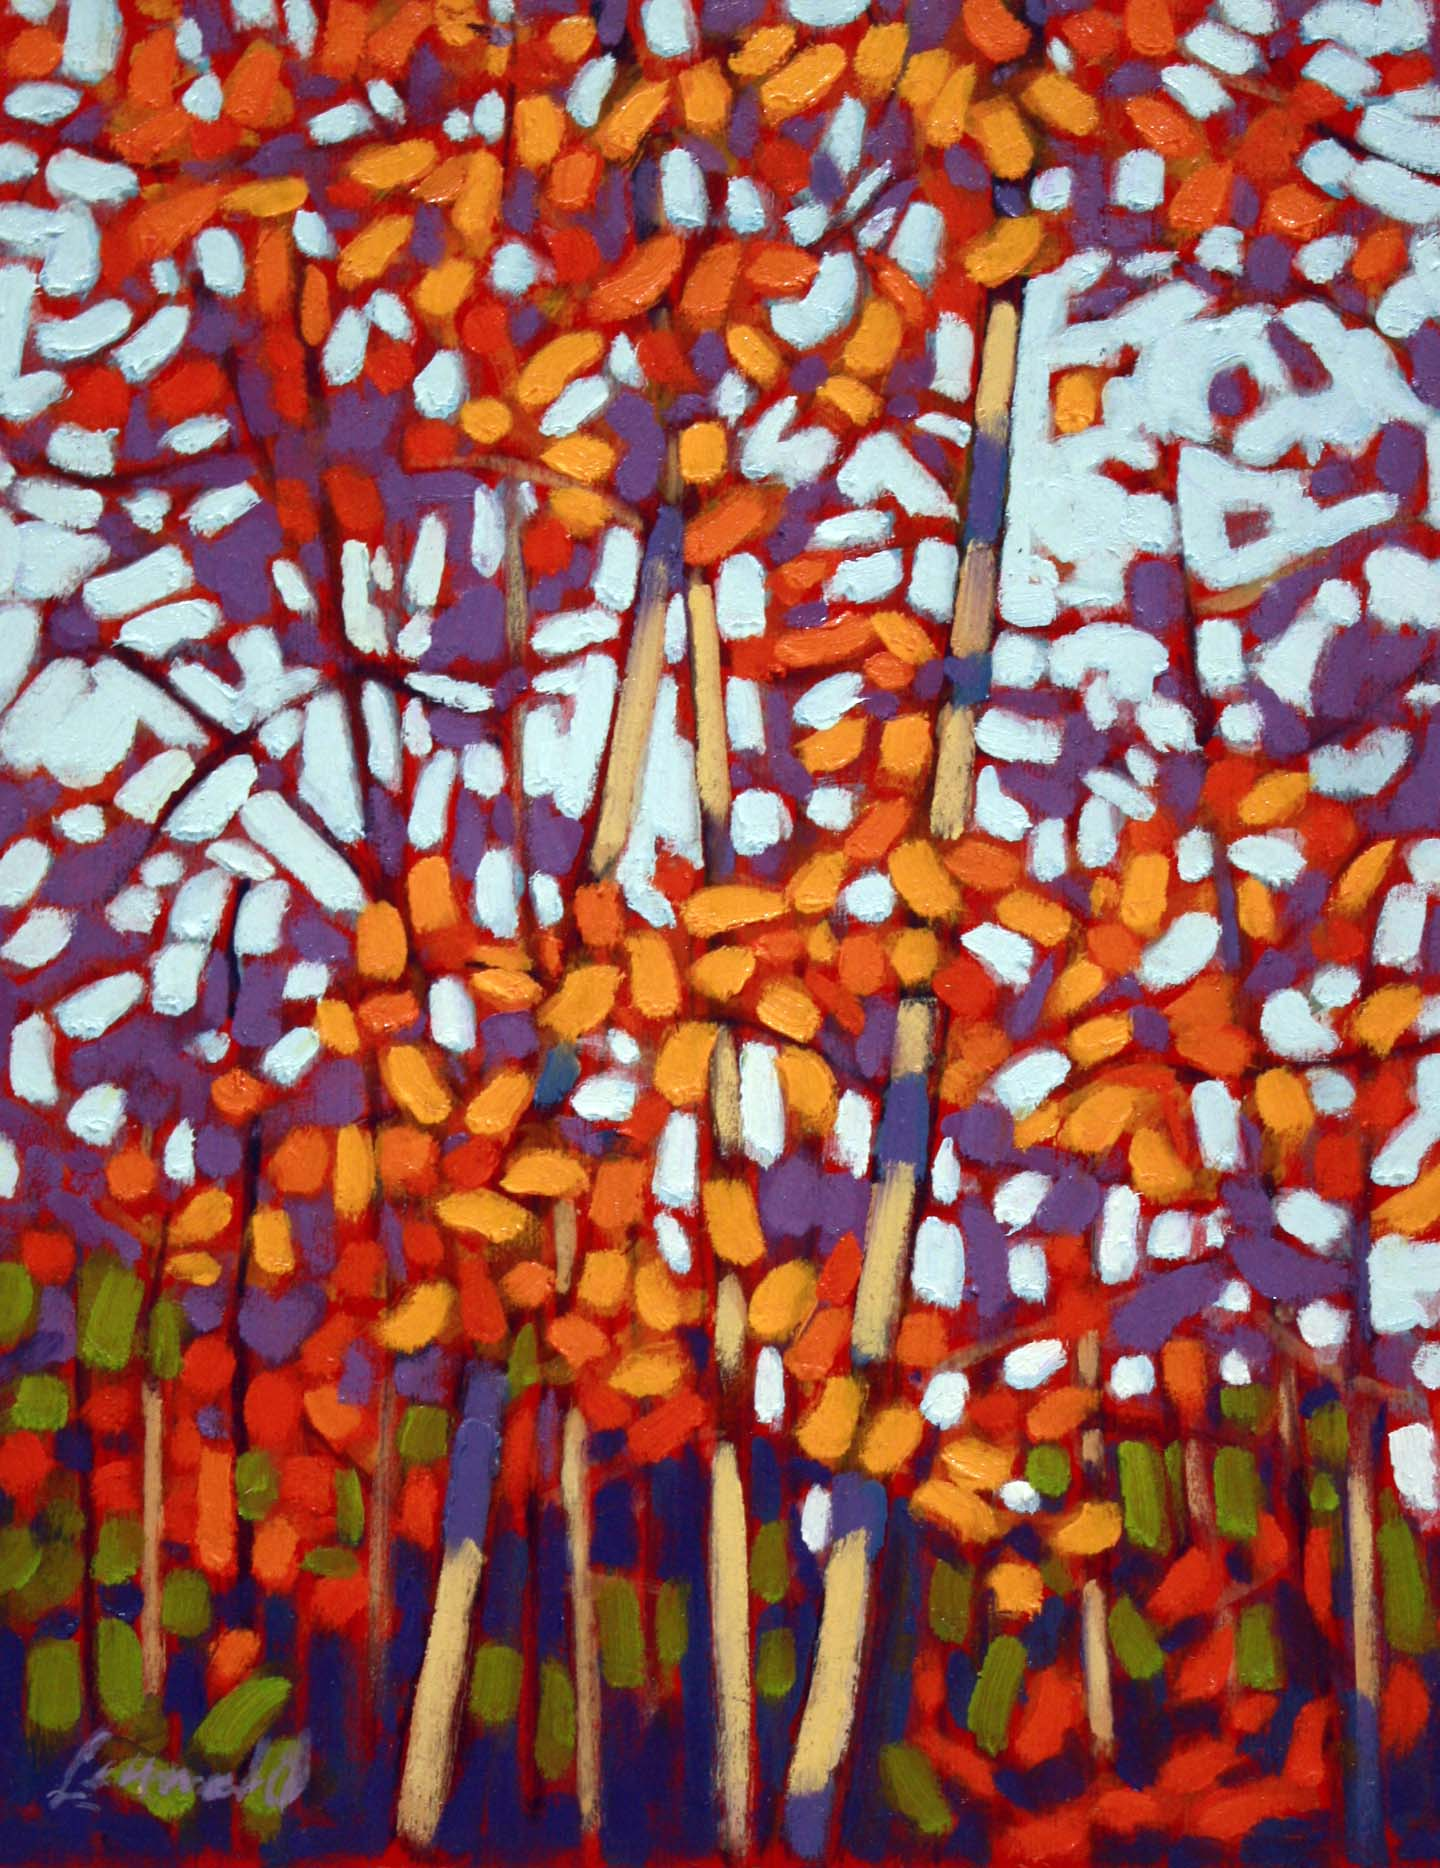 Autumn Leaves 10 x 8 Oil on Board SOLD